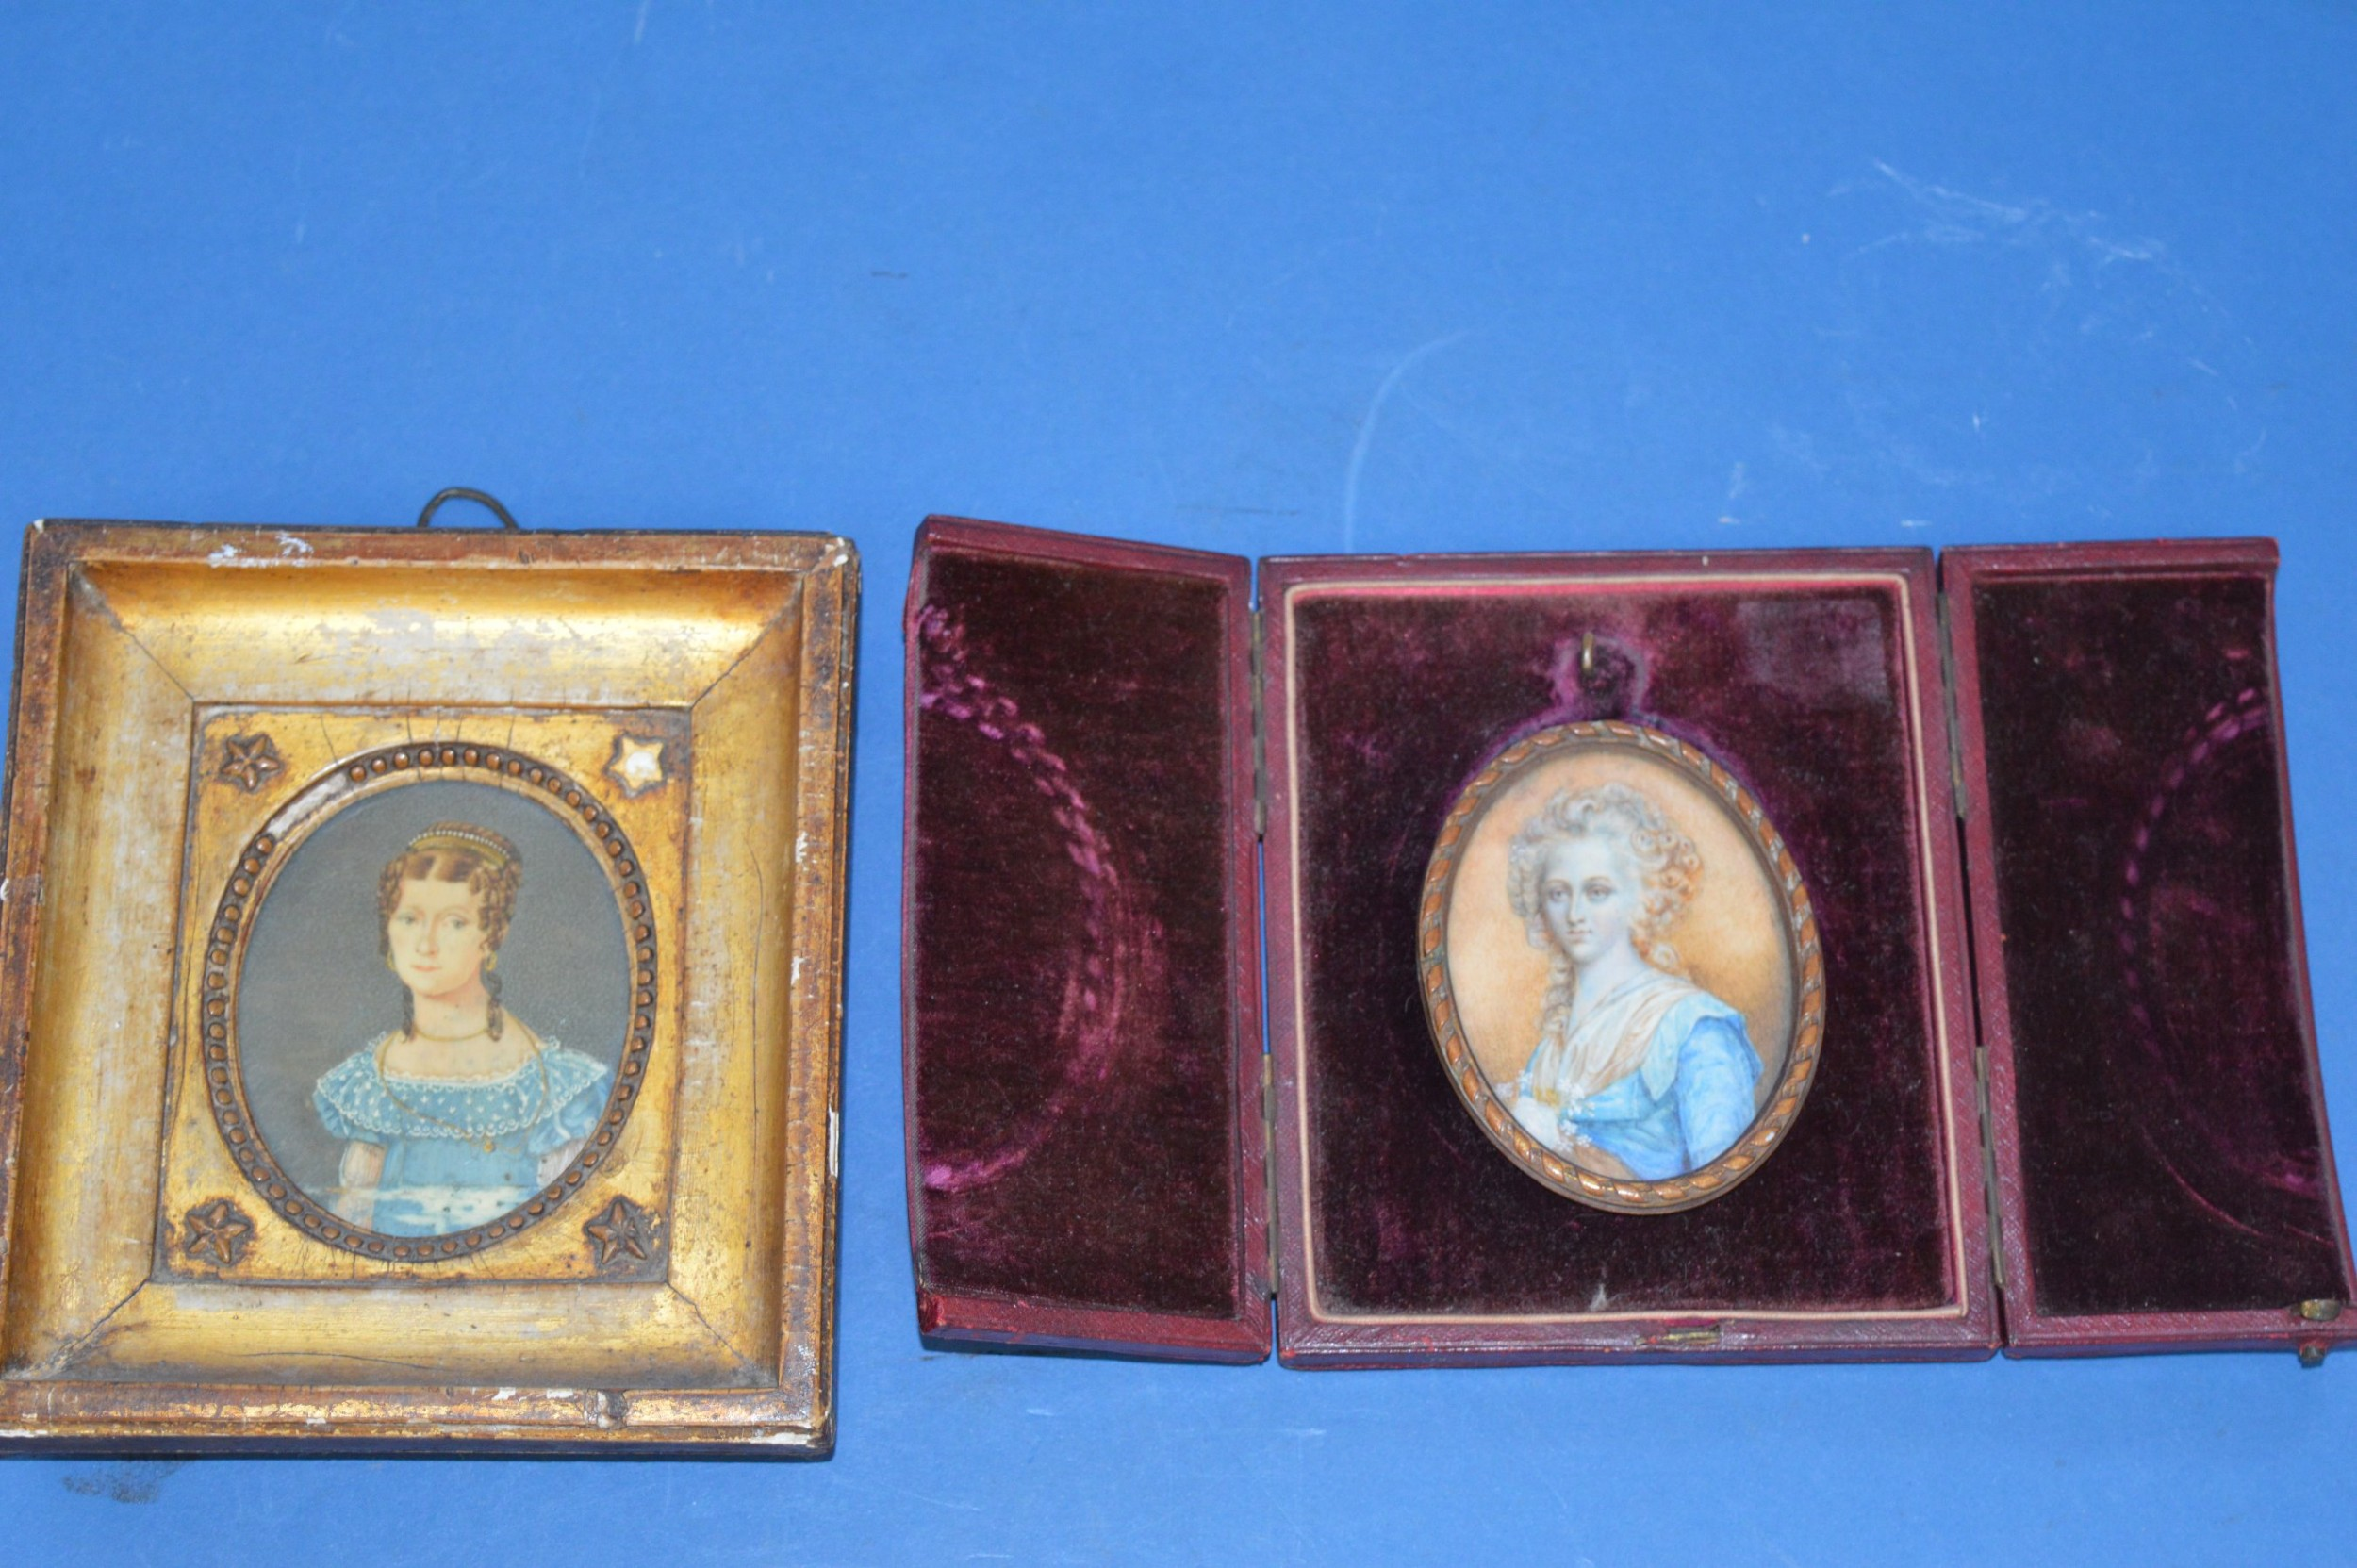 two georgian portrait miniatures c1800original frame and tooled leather carrying case